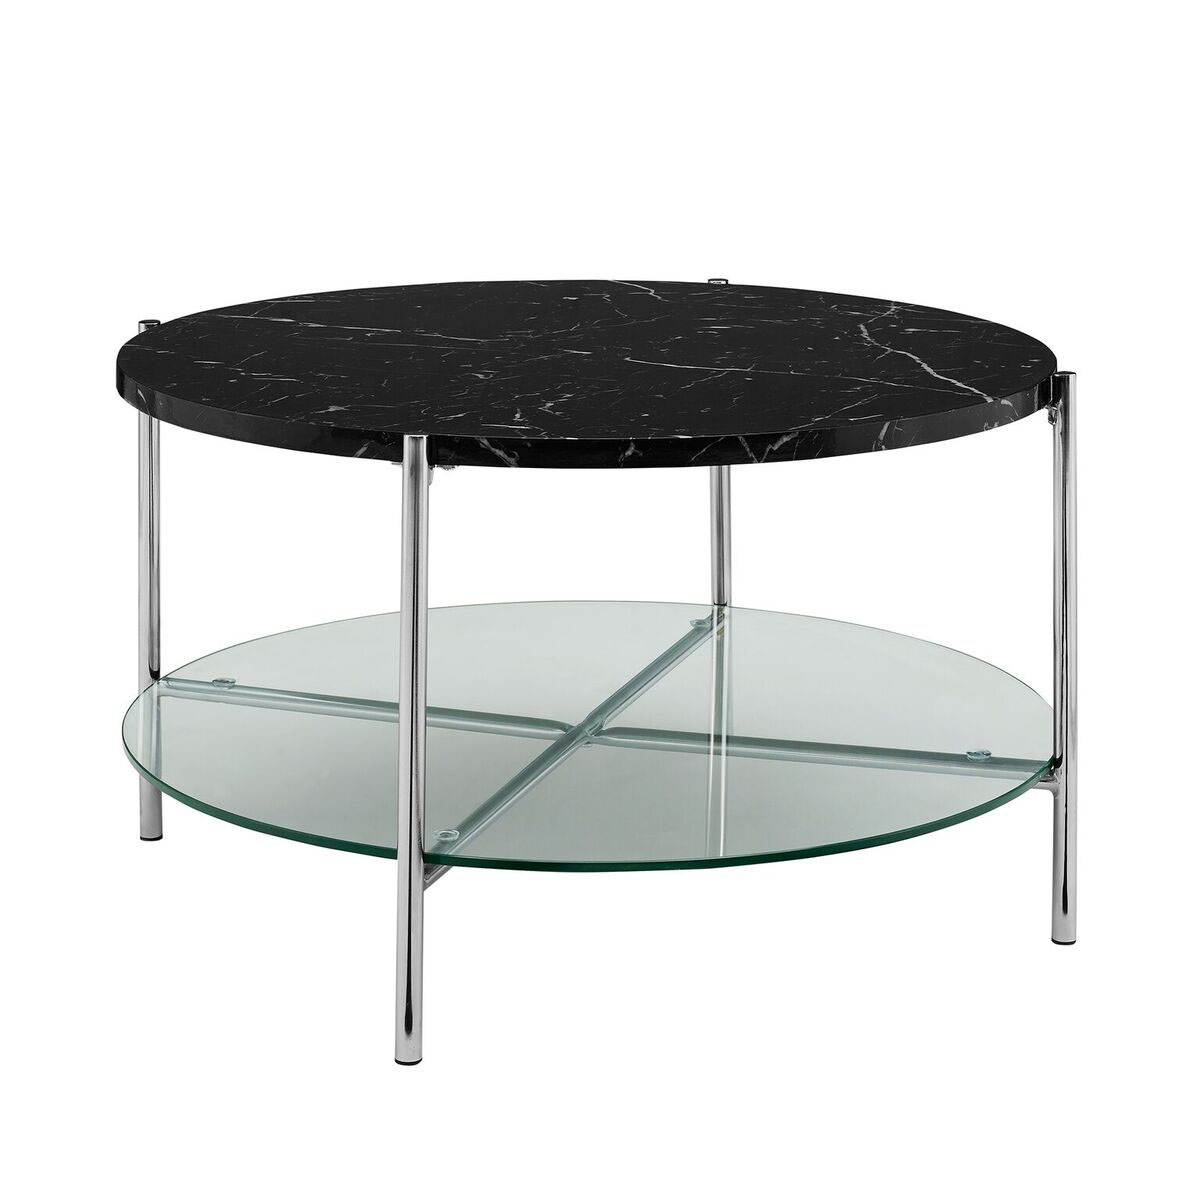 WE Furniture Round Coffee Table Black Marble Top Glass Shelf - Round glass coffee table with chrome legs